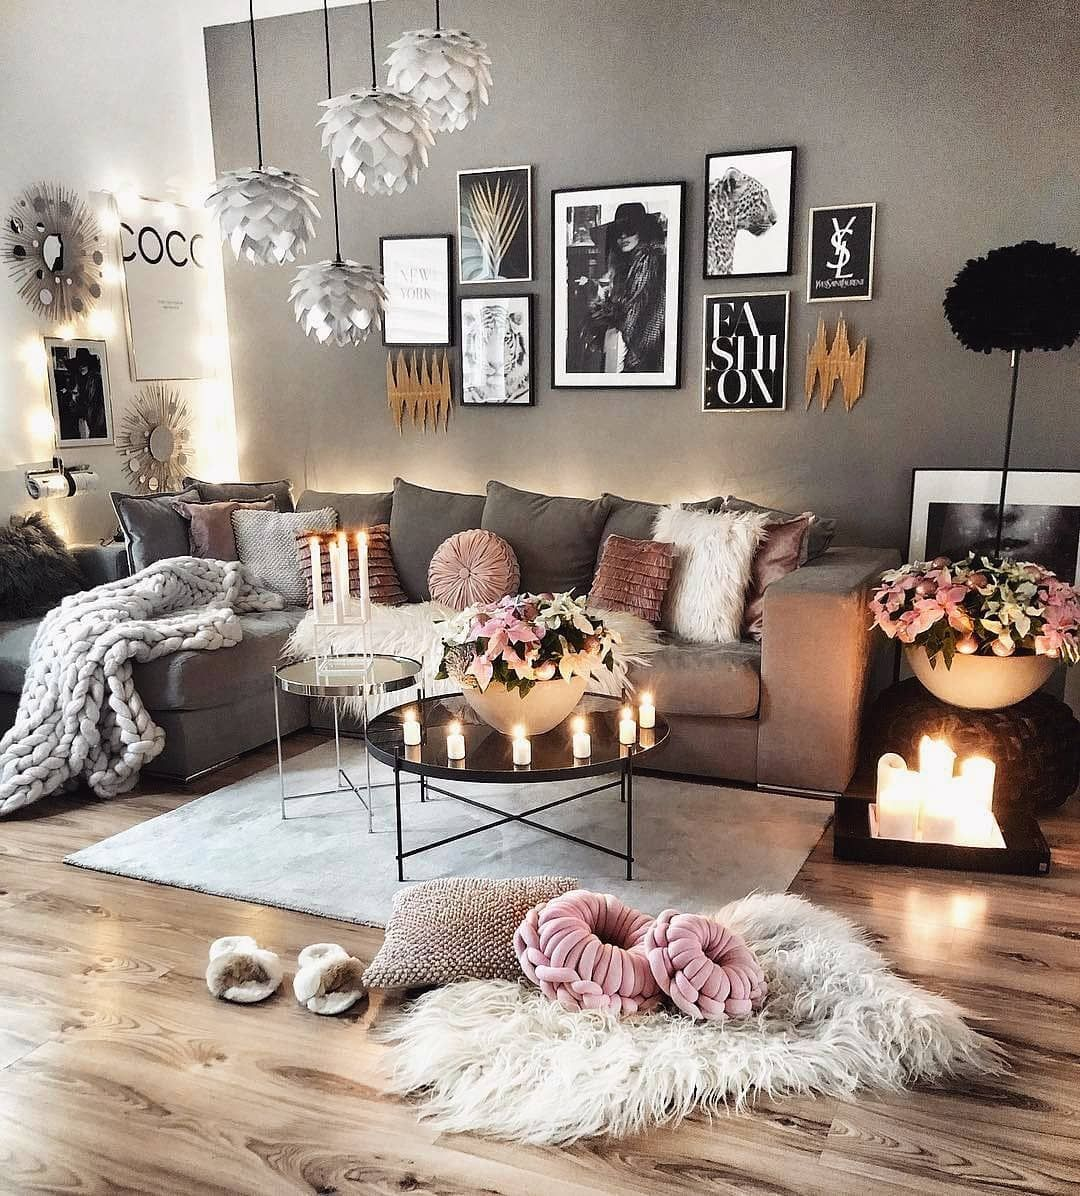 Www Ego Co Uk On Instagram Have You Ever Seen A More Perf Living Room Tho Thi Bohemian Living Room Decor Living Room Decor Rustic